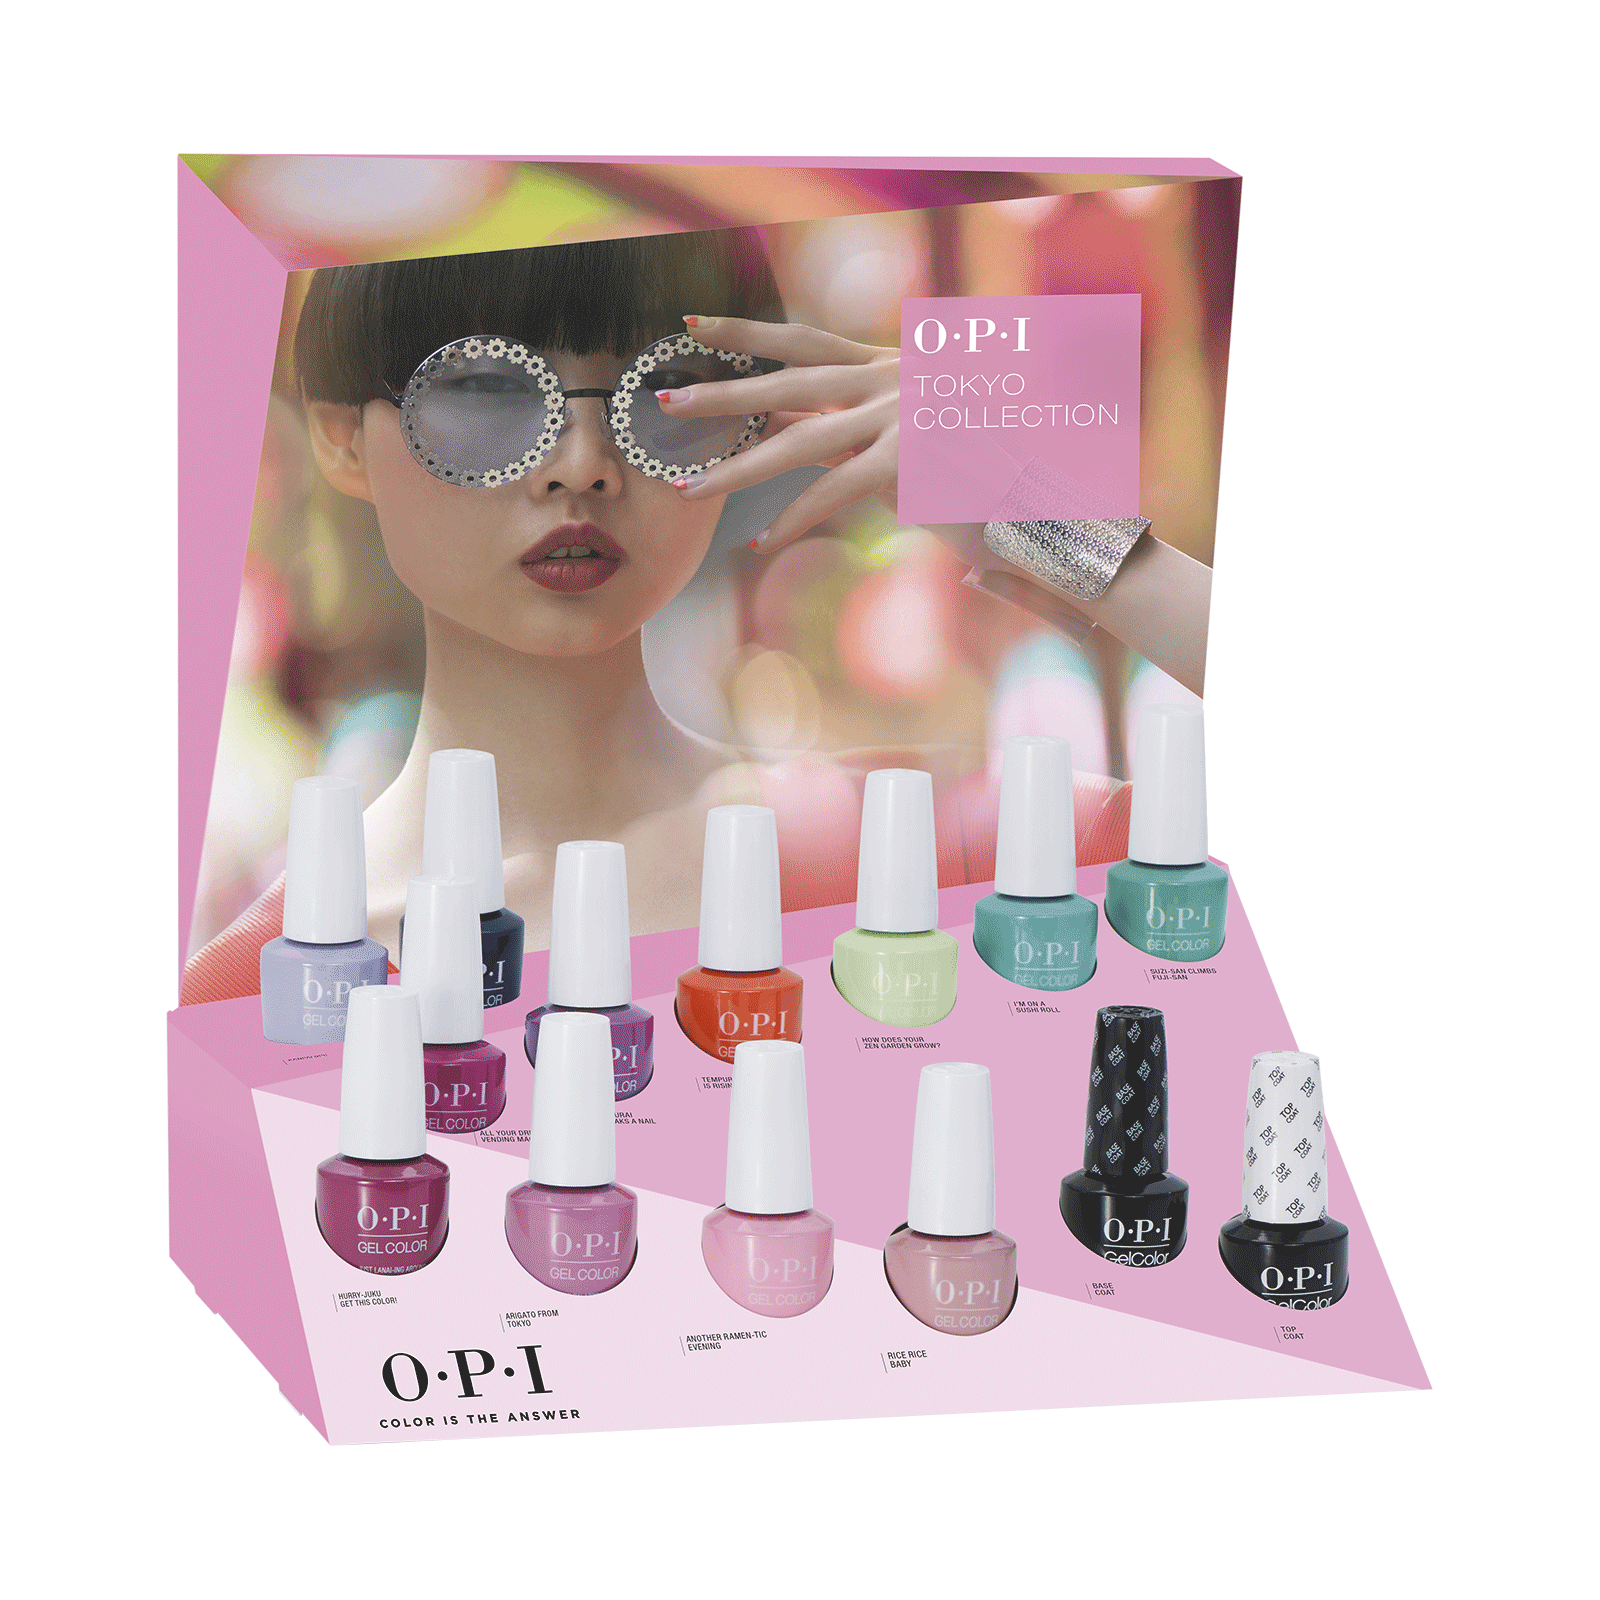 GelColor Tokyo Collection - 14 Piece Display